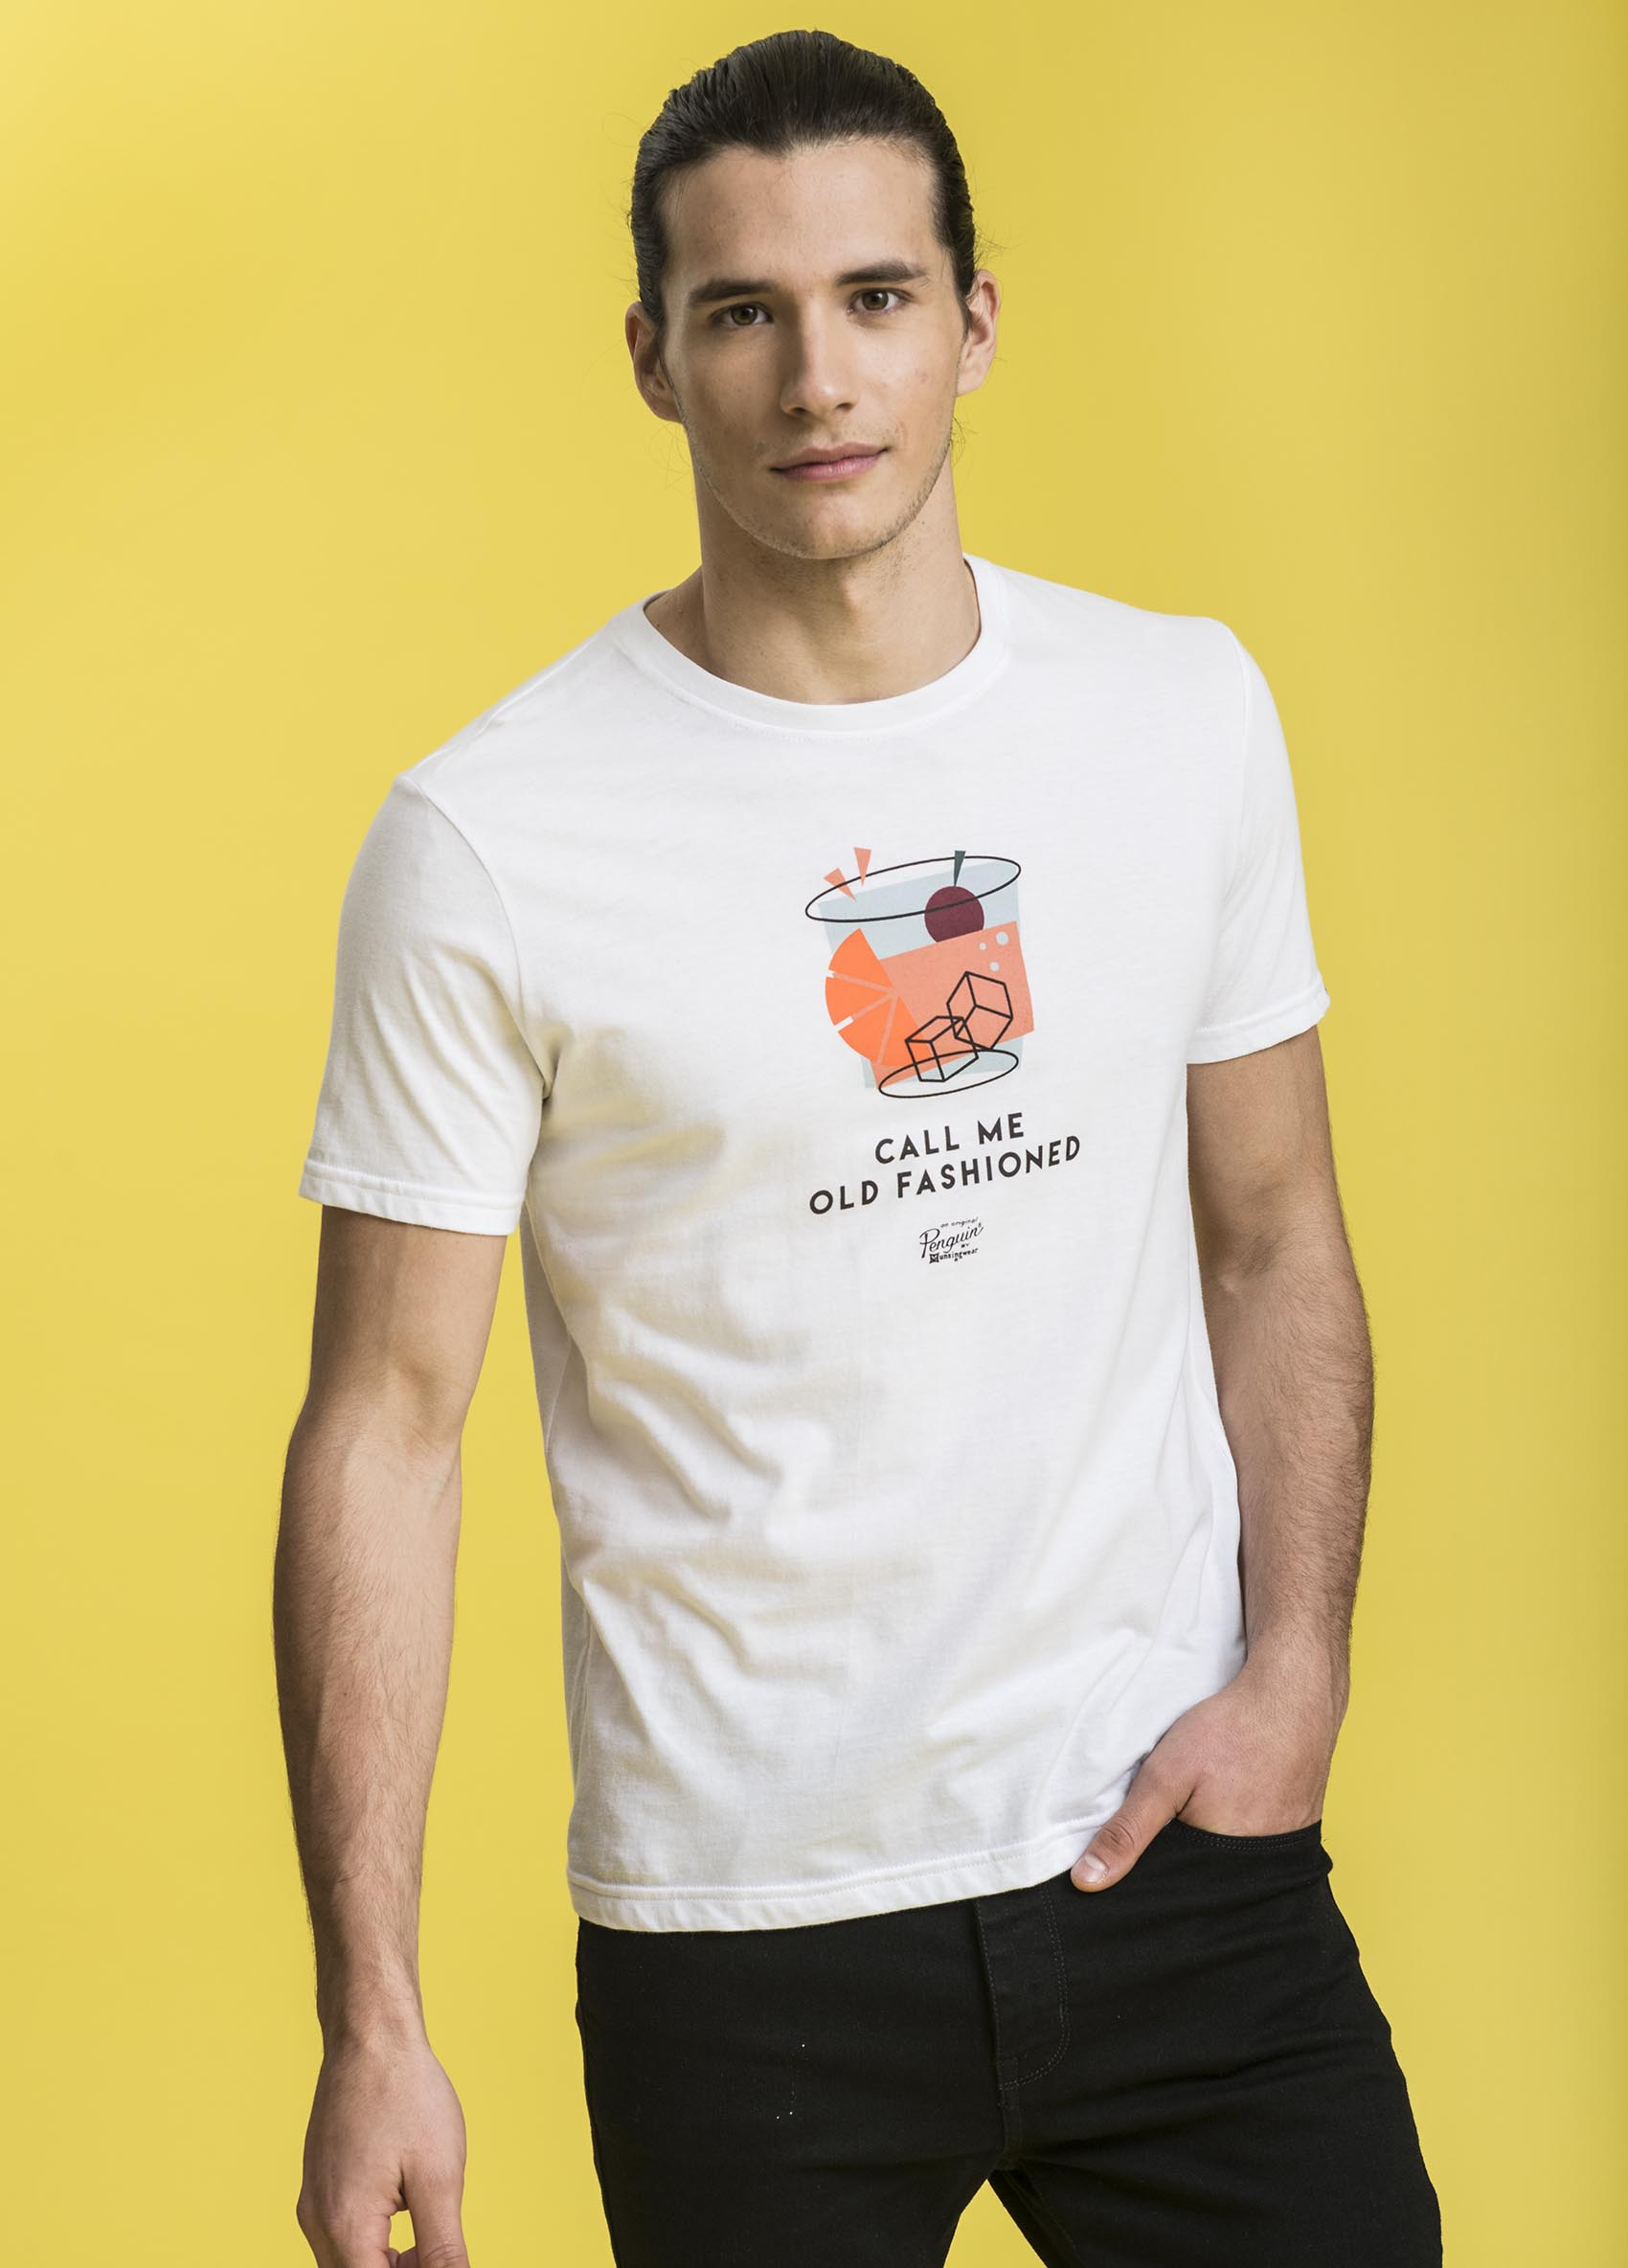 penguin_call-me-old-fashioned-tee_35-25-2019__picture-12152